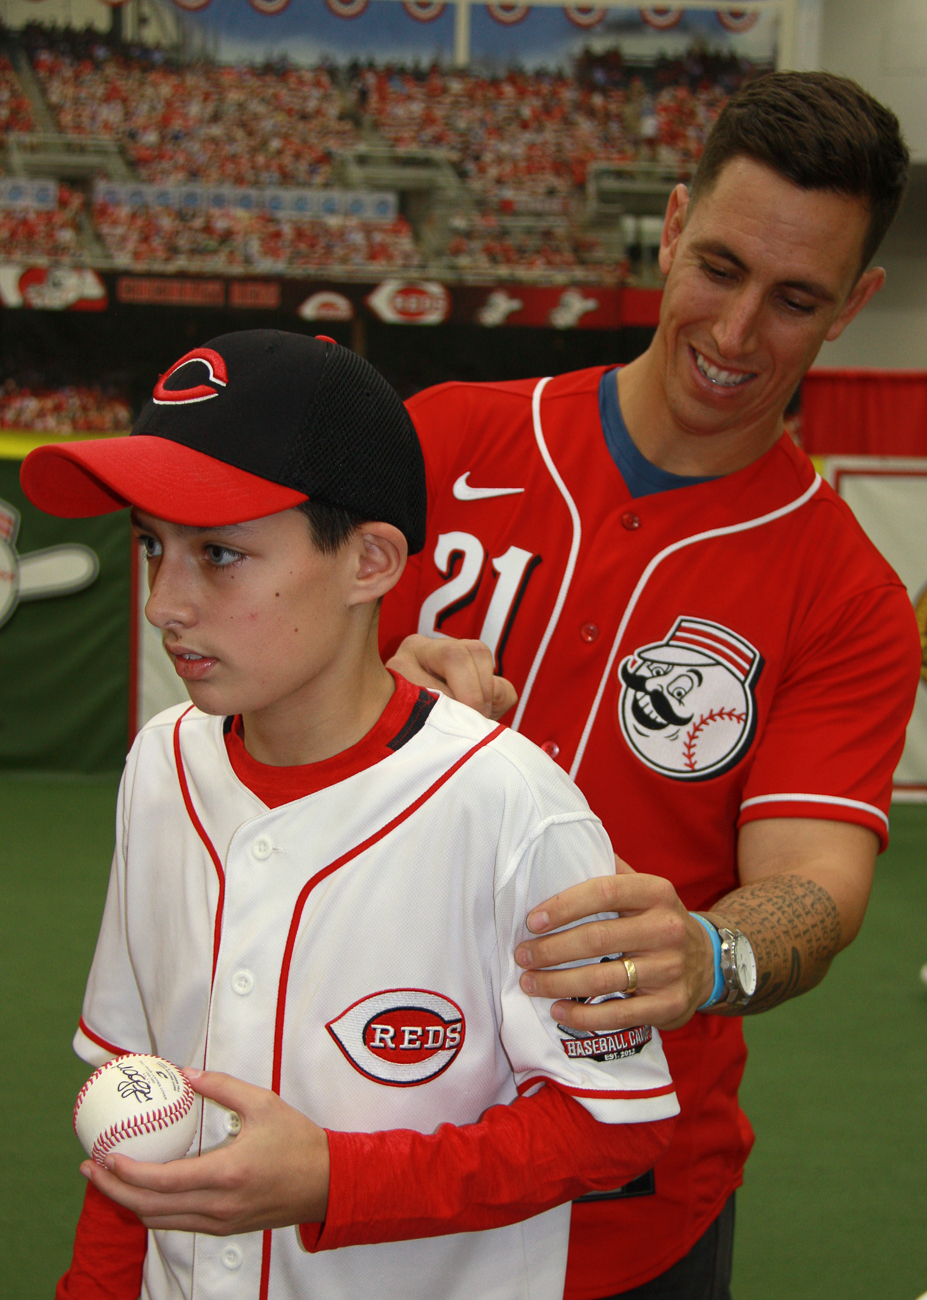 Michael Lorenzen, pitcher #21, signs a fan's shirt